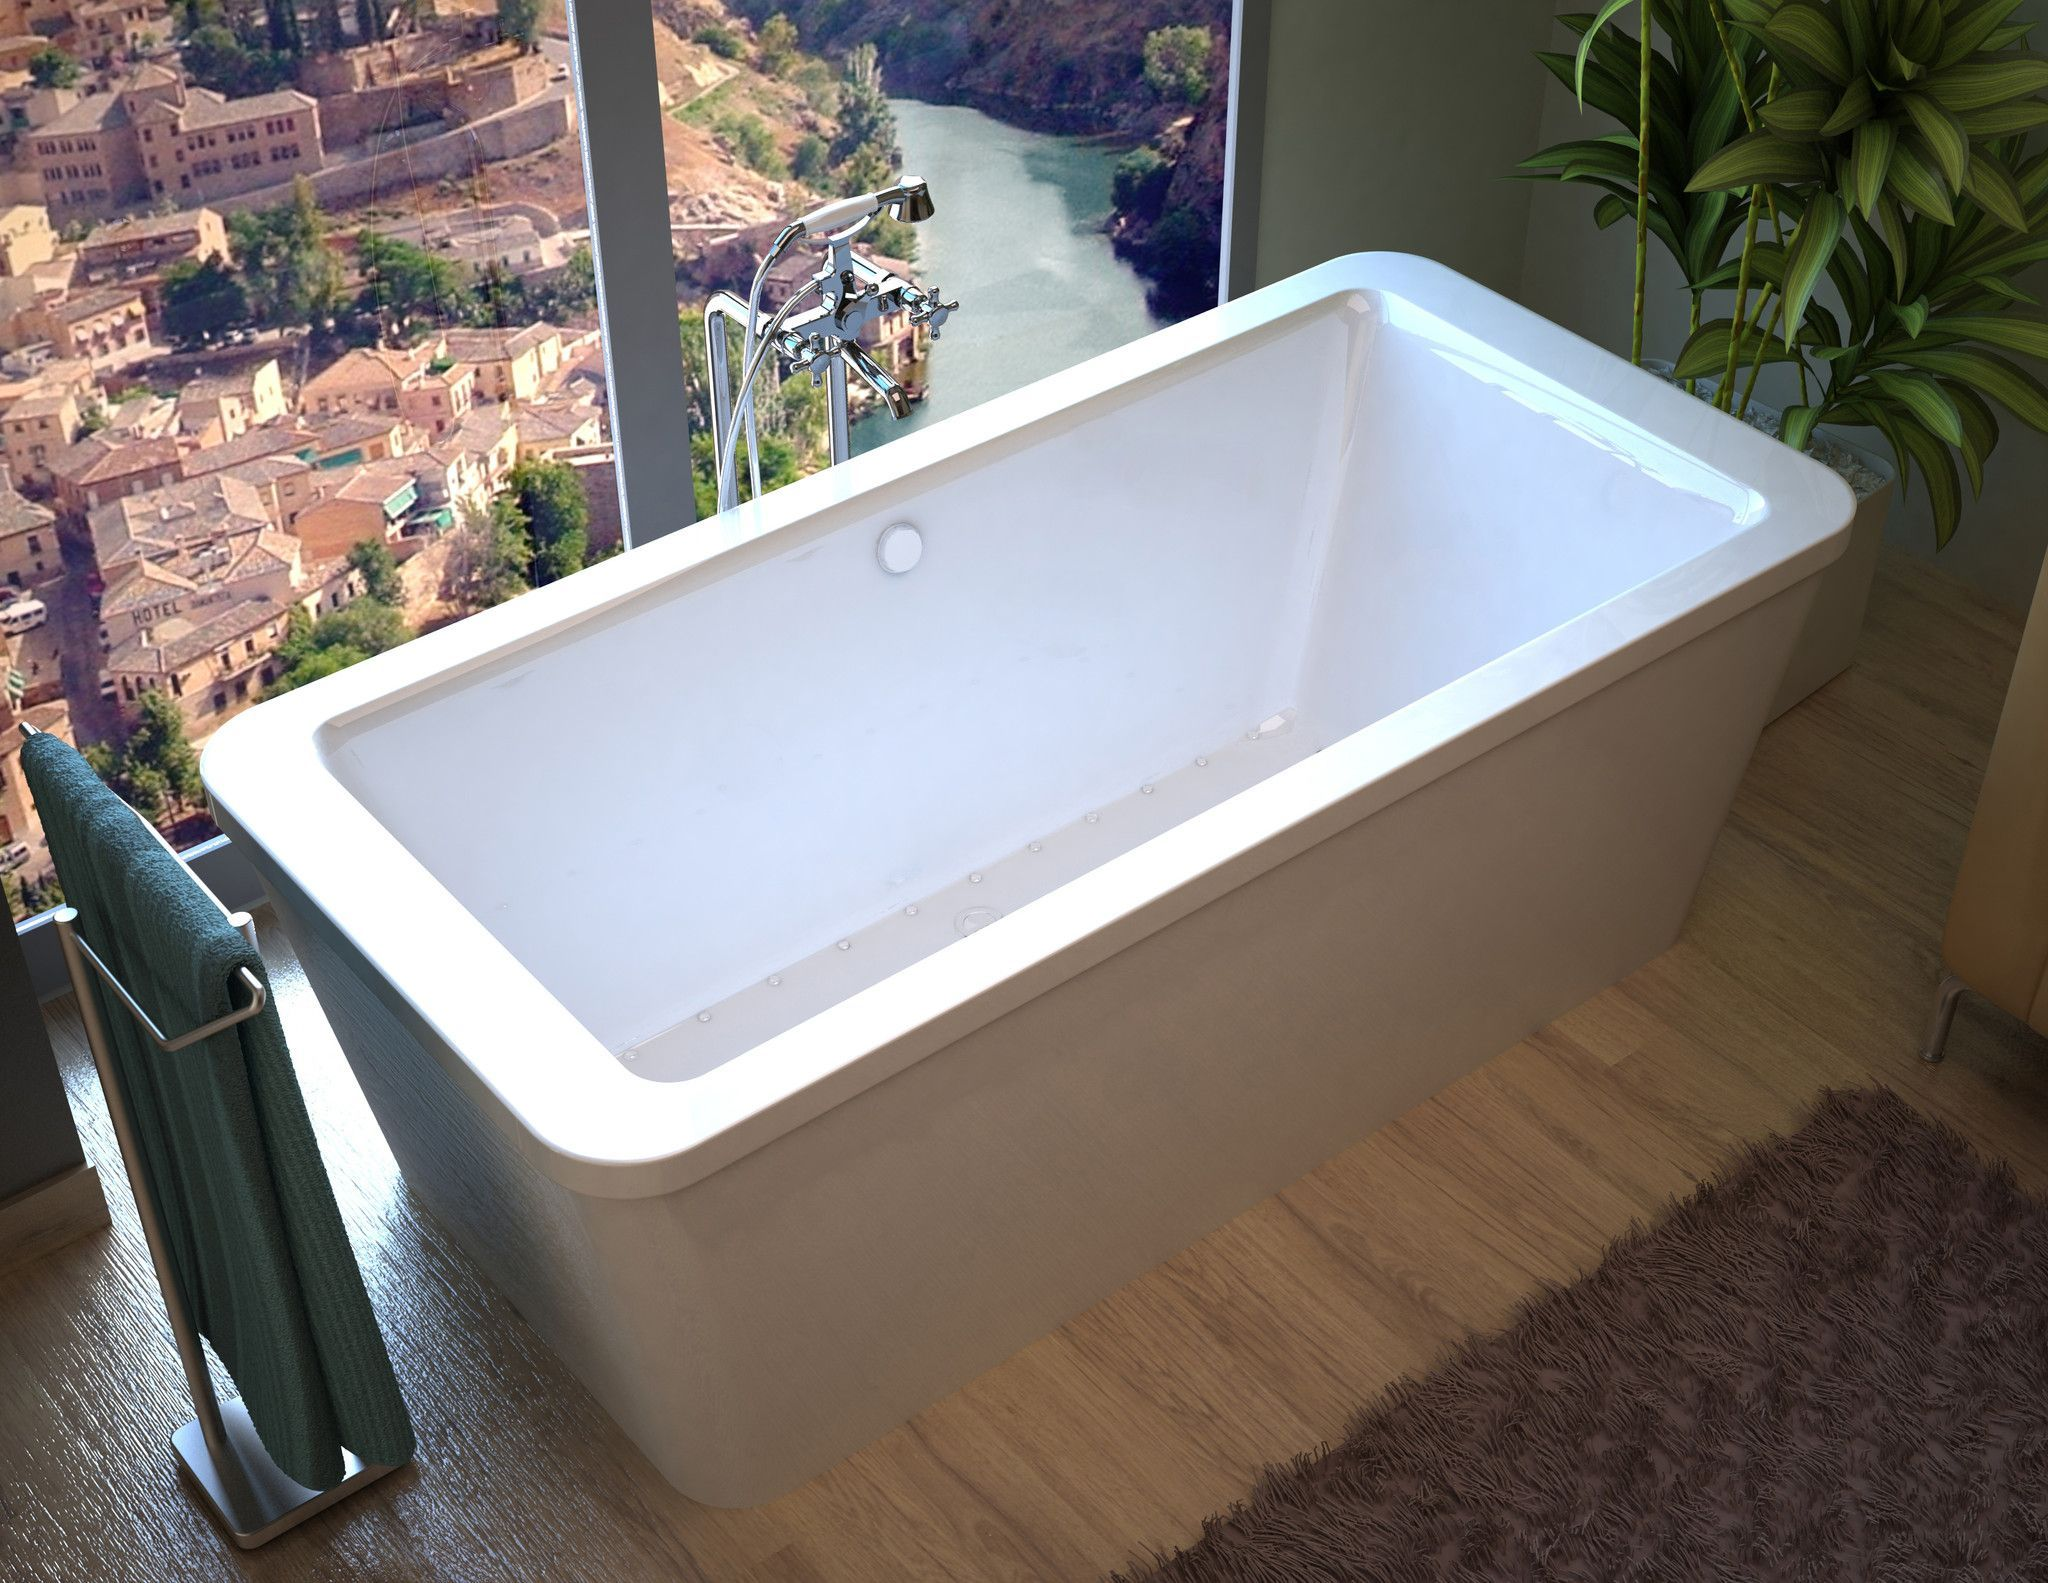 Atlantis Whirlpools 3267AA Aquarius 34 x 67 Rectangular Freestanding ...